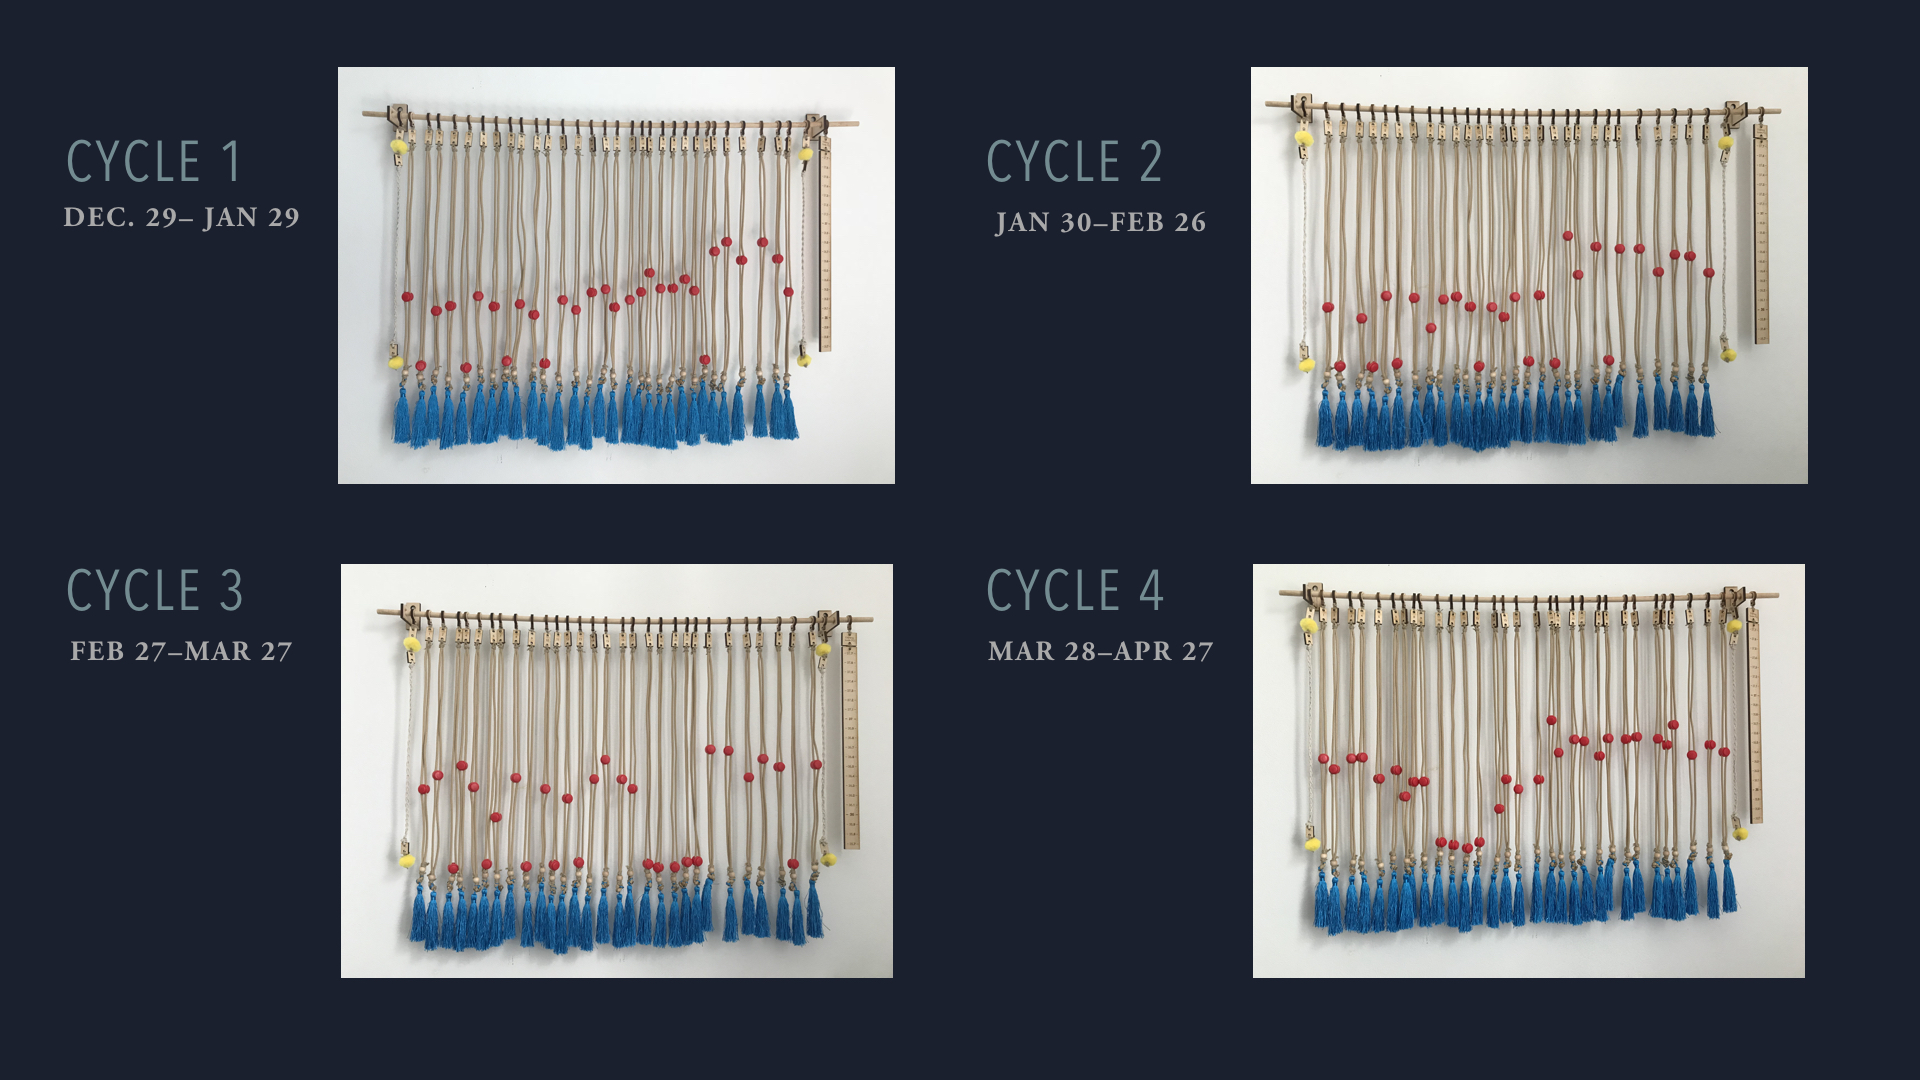 Cycles charted linearly on the Onda Wall Calendar